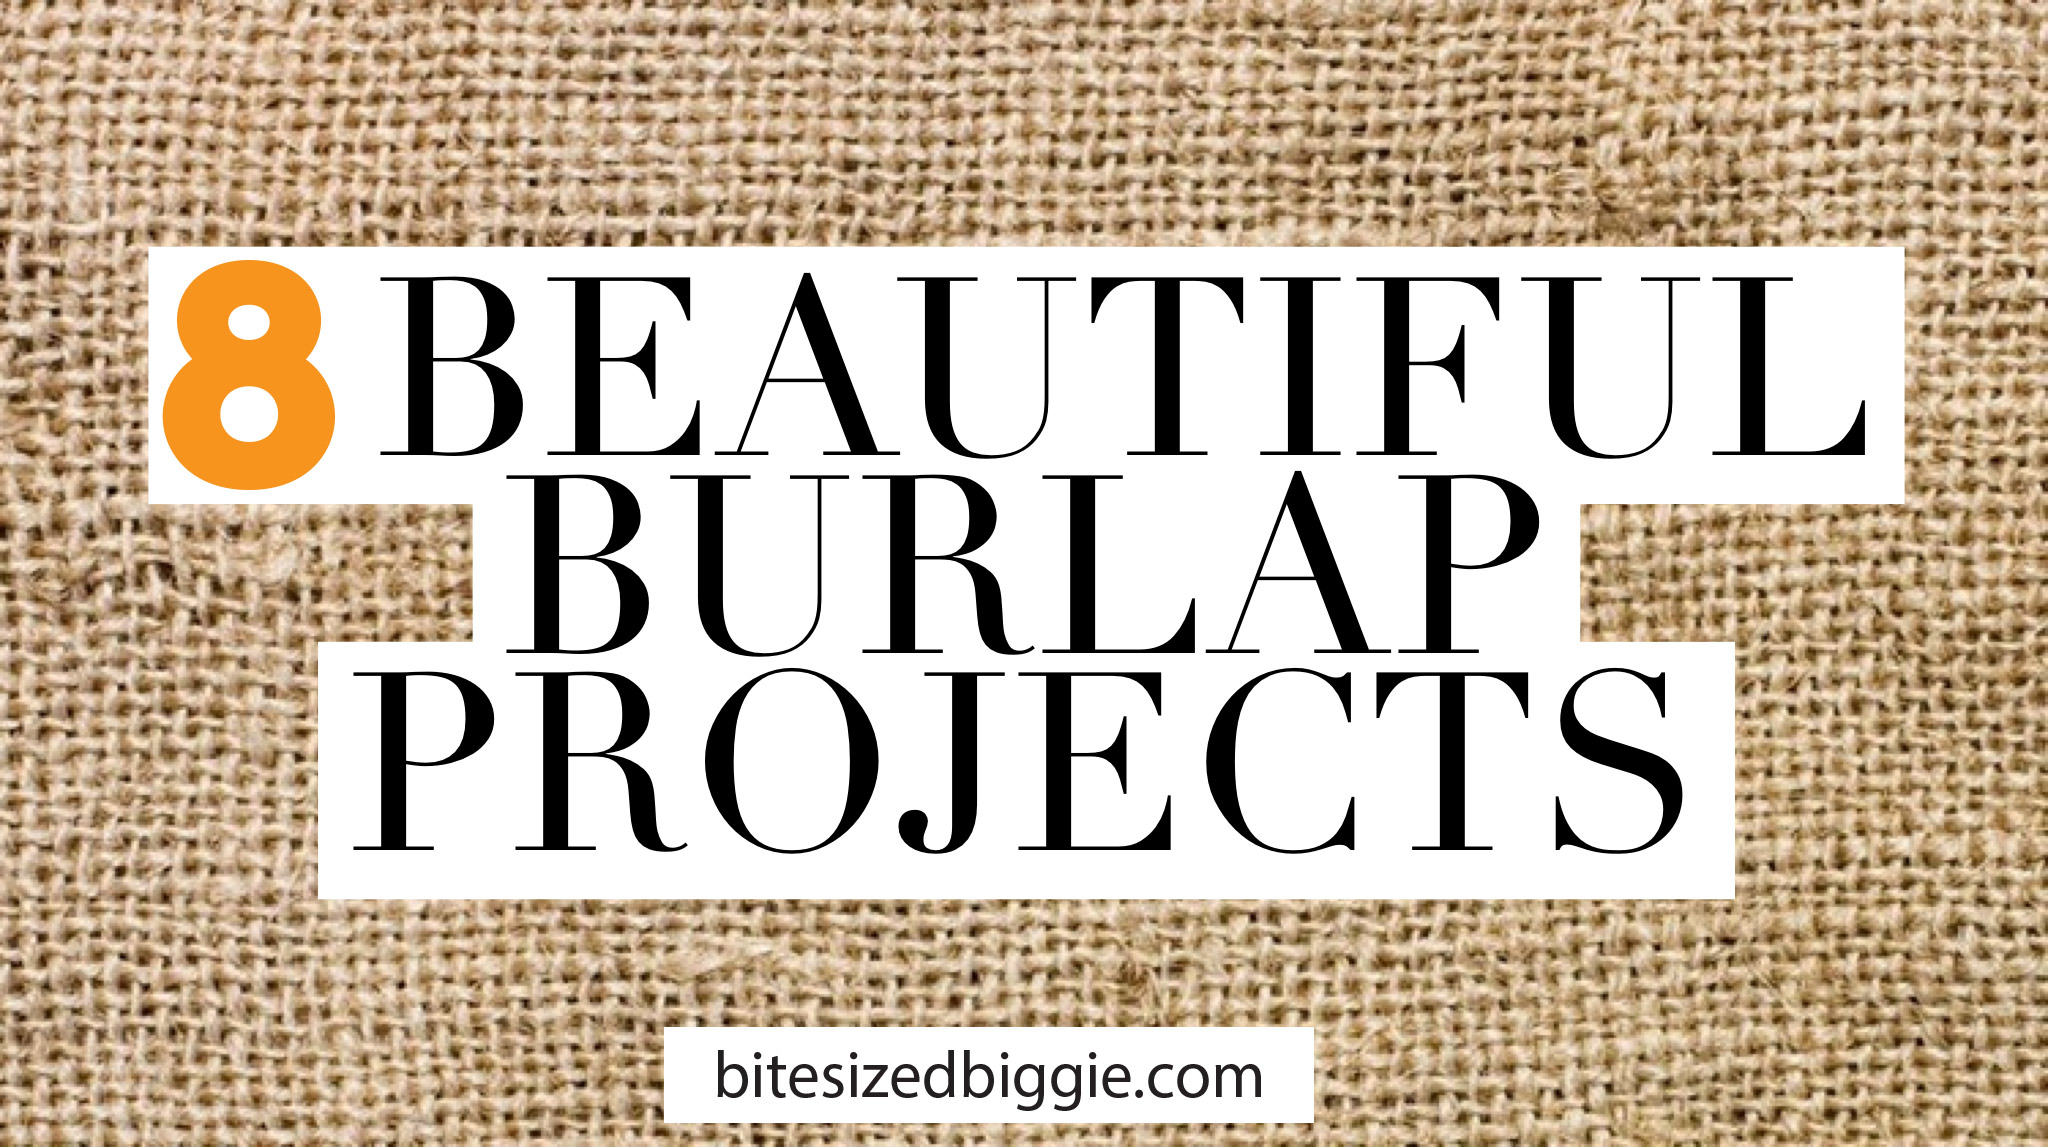 8 Beautiful Burlap Projects